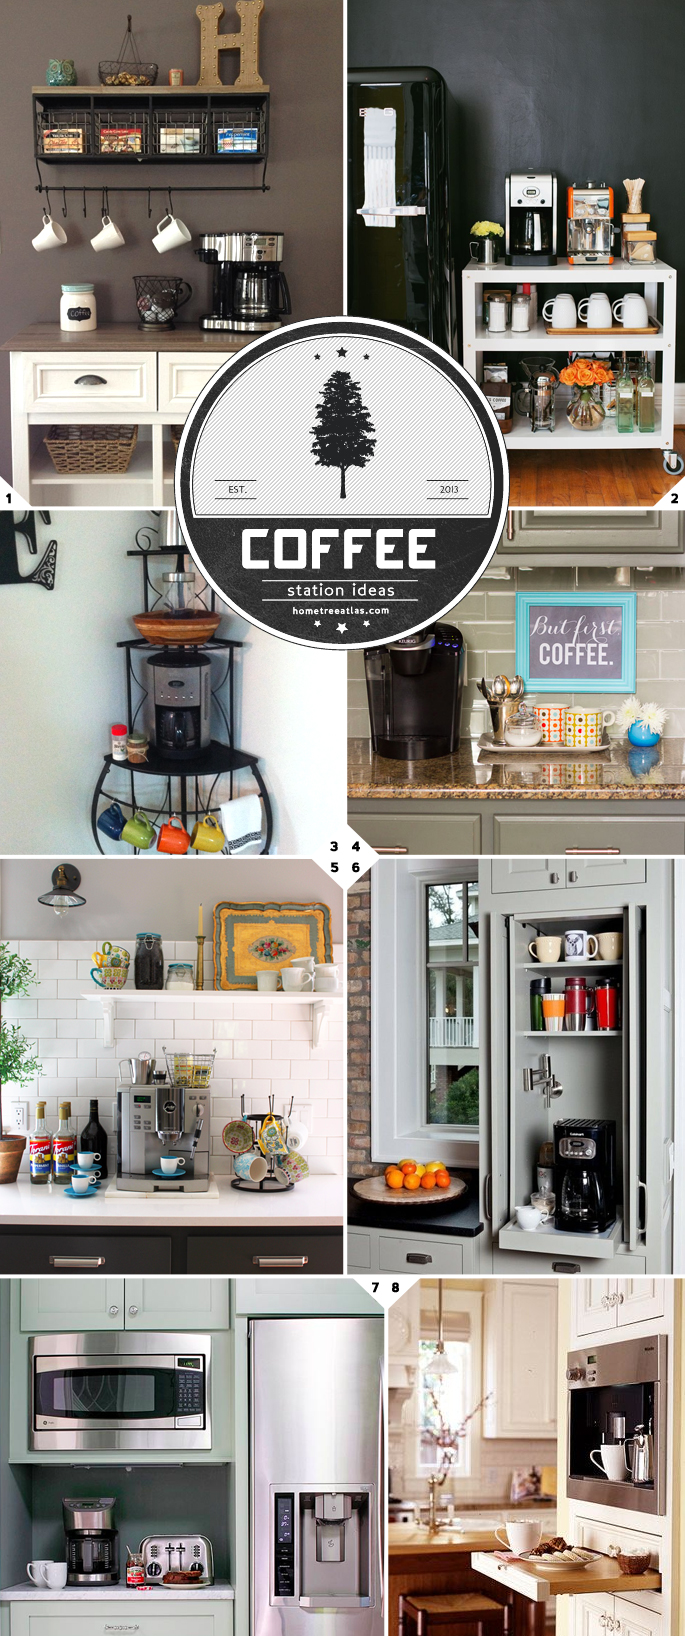 Home Barista Kitchen Coffee Station Ideas And Designs